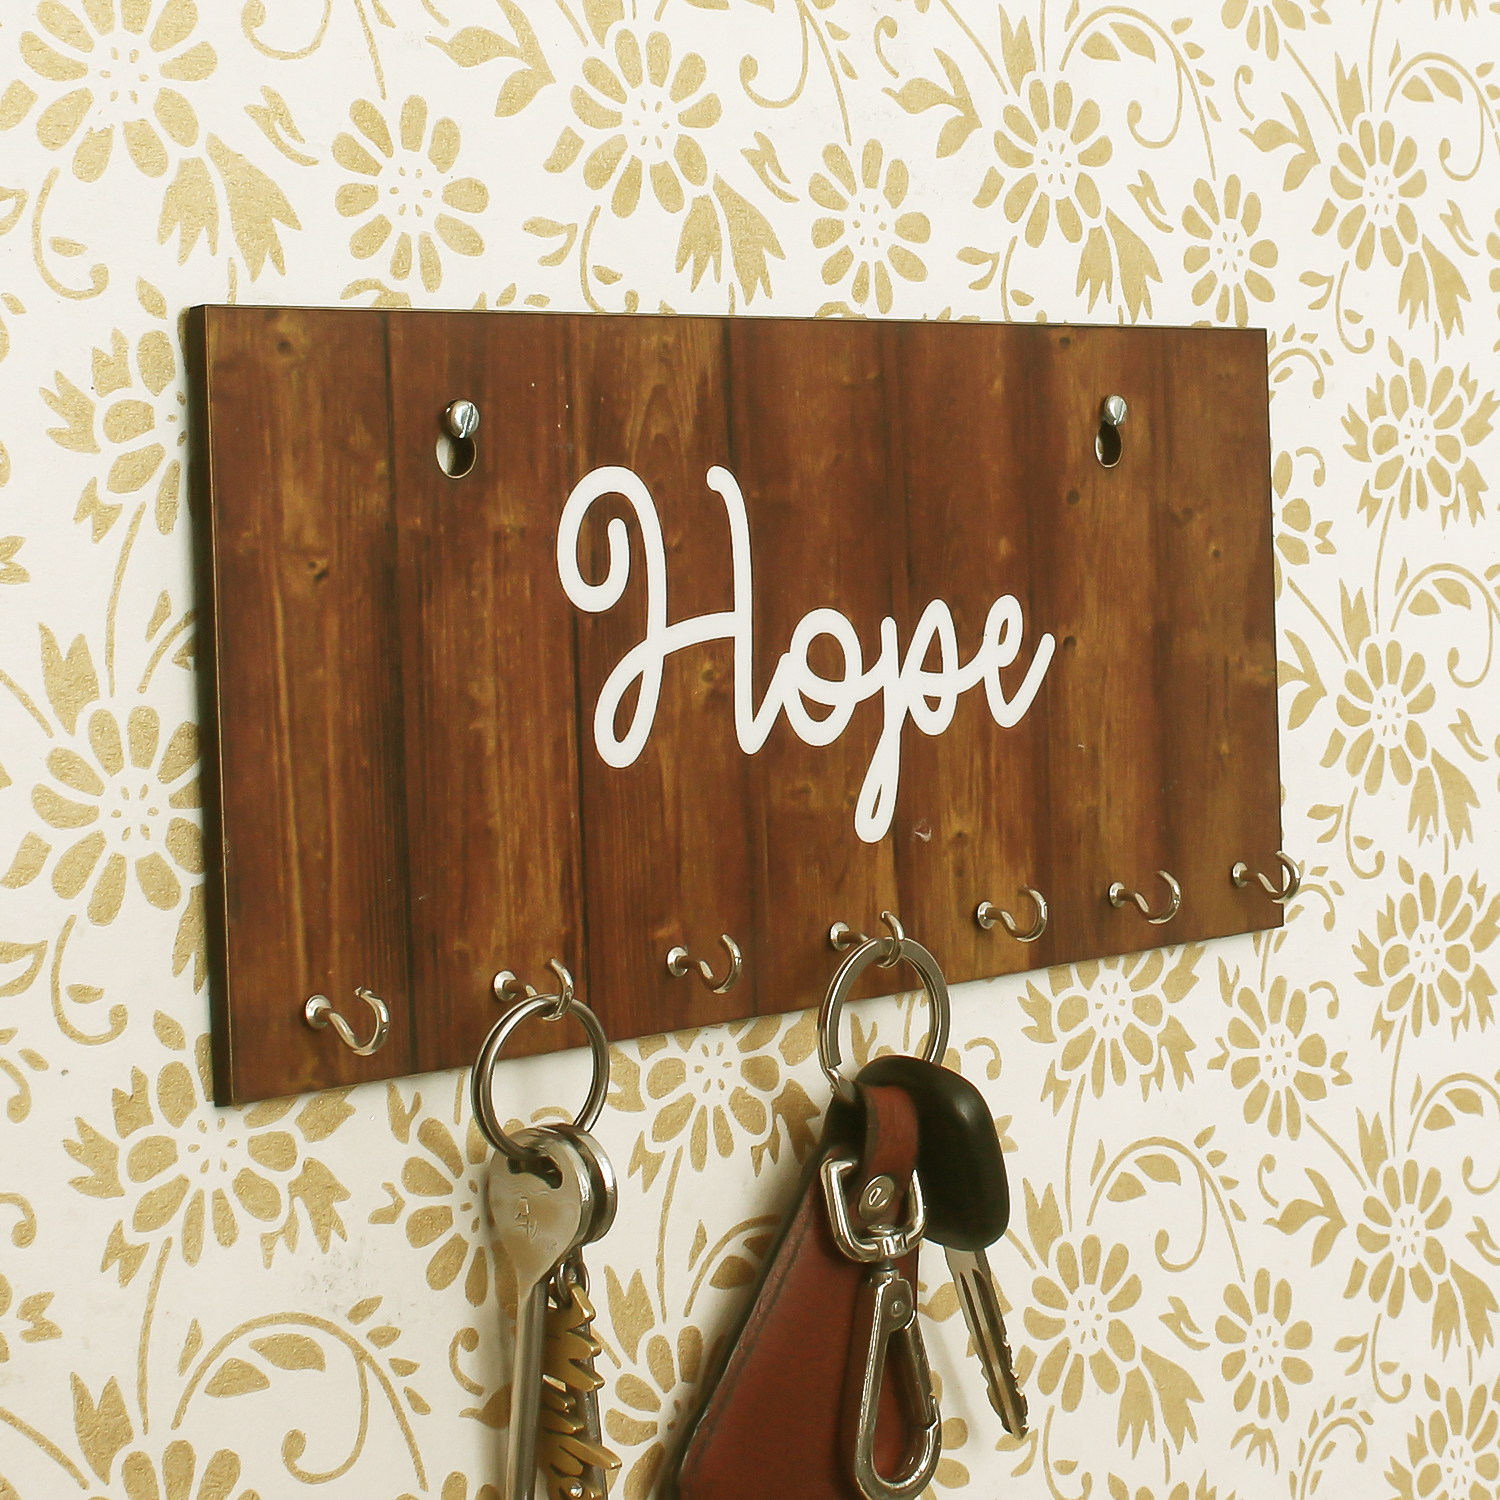 Hope Theme Wooden Key Holder with 7 Hooks Indian Home Decor